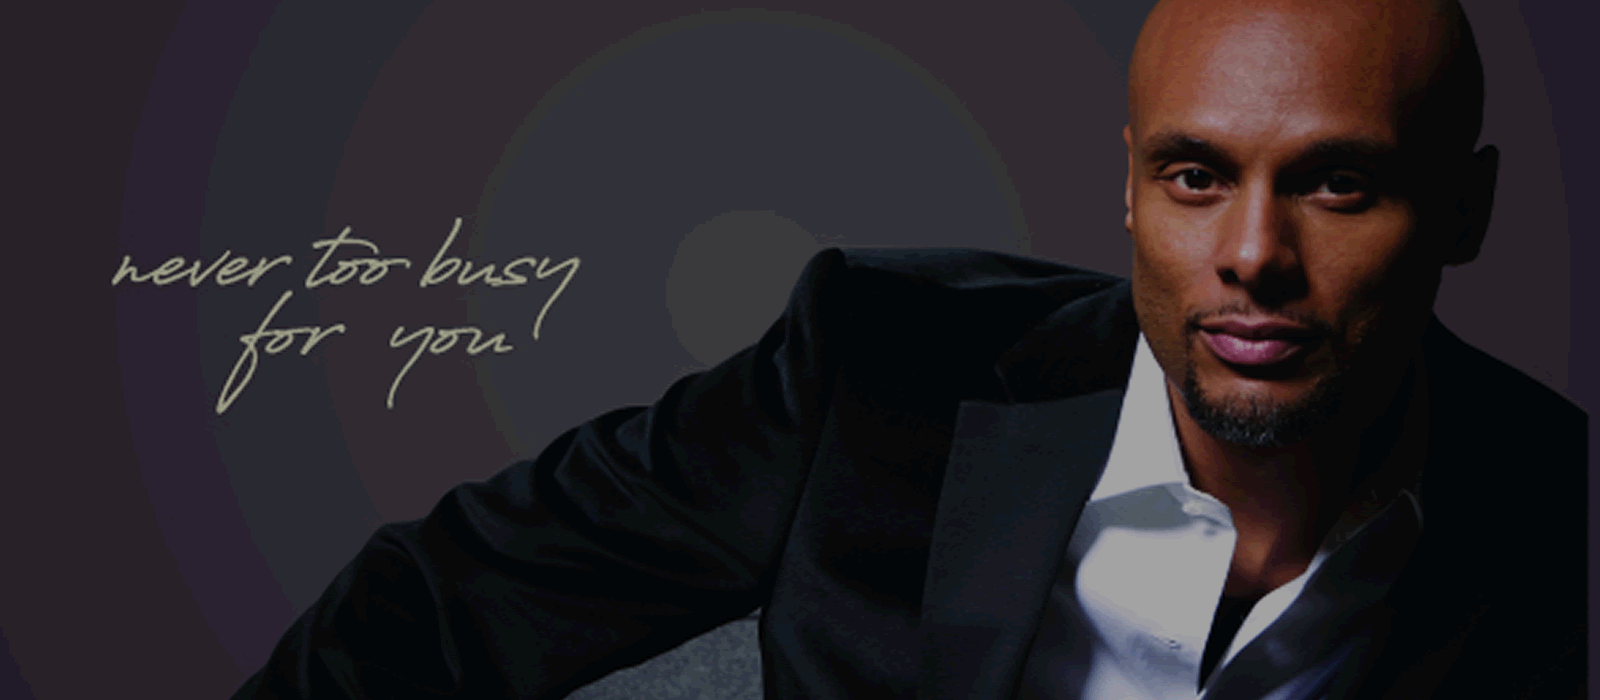 Kenny Lattimore Website Event